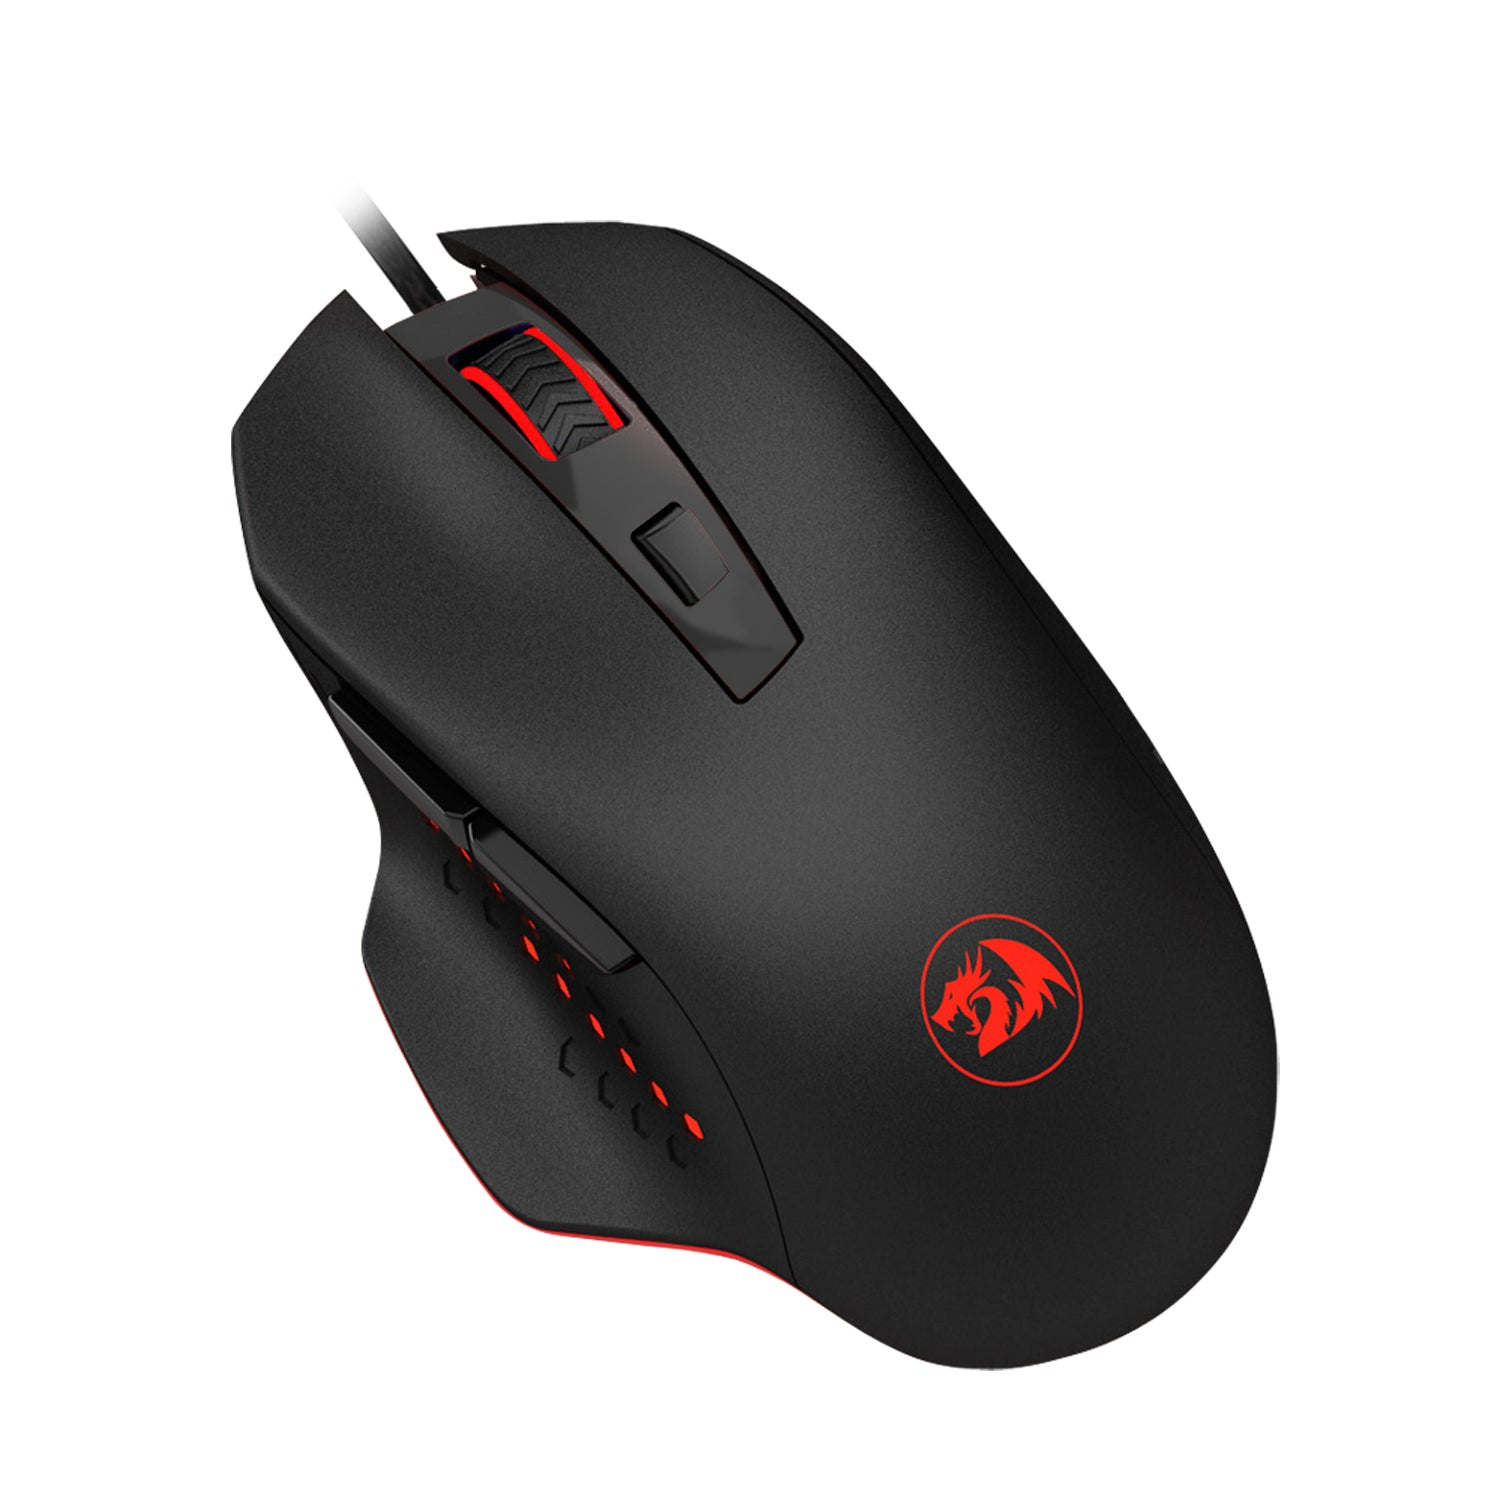 Mouse Gamer Redragon Gainer M610 Bluetooth